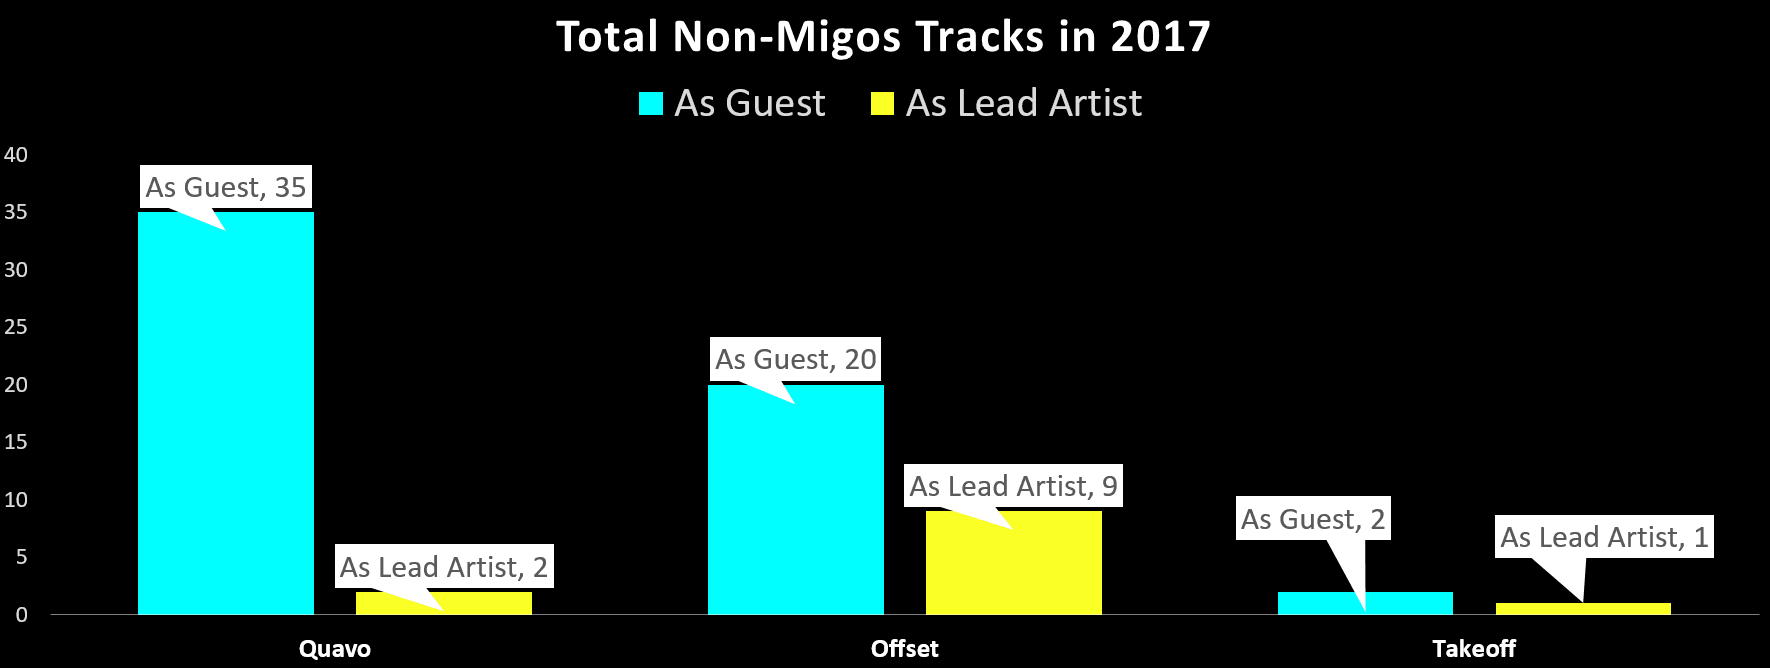 migos-by-the-numbers-2017-10